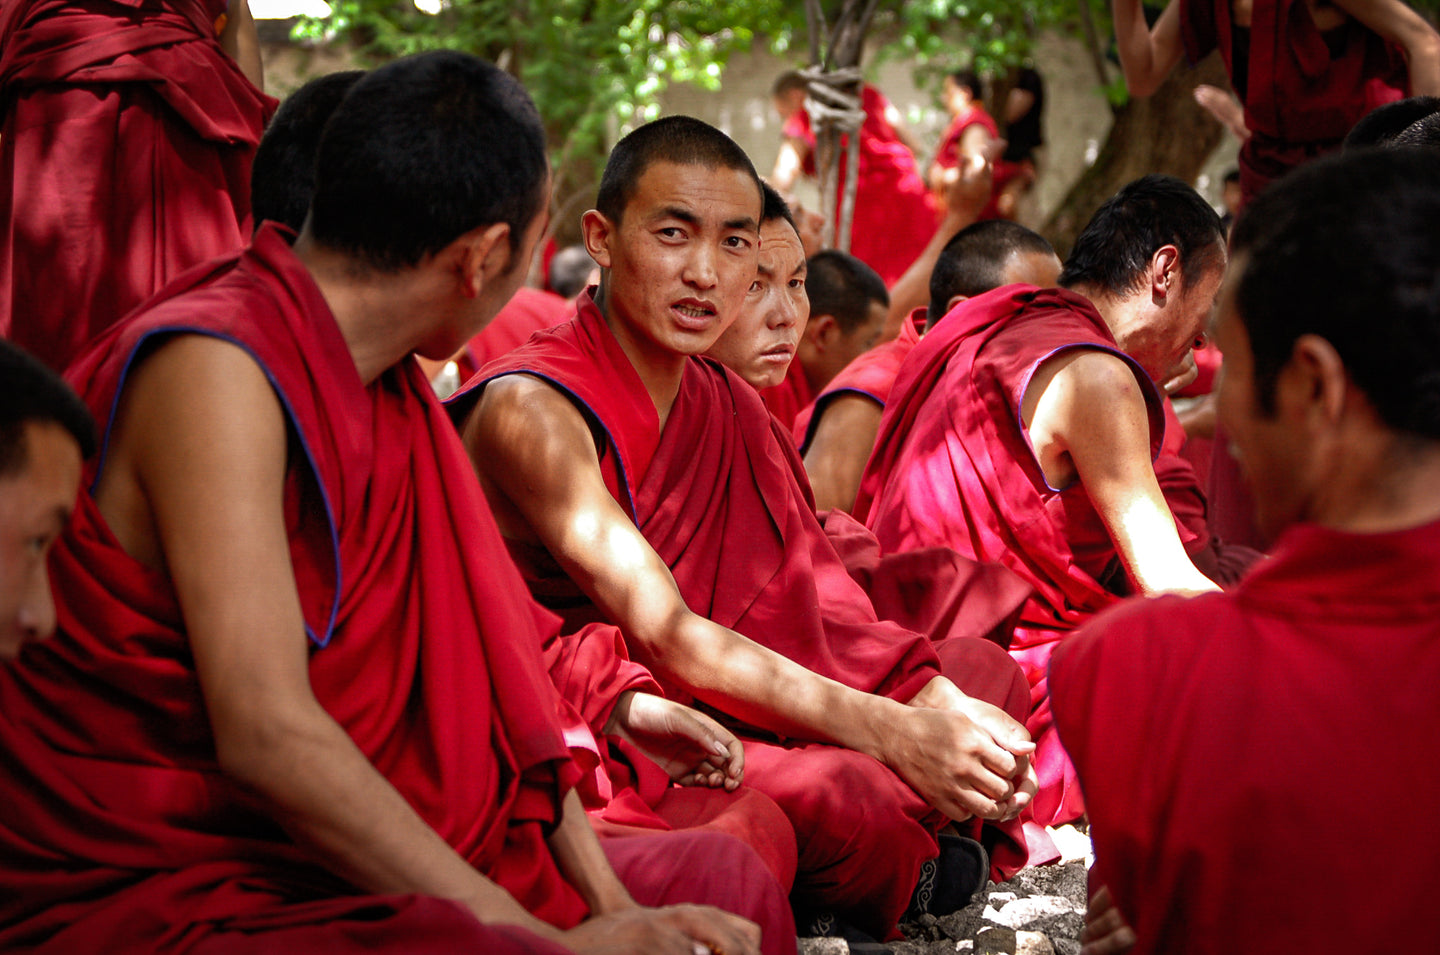 Tibetan Monk Looking Curiously